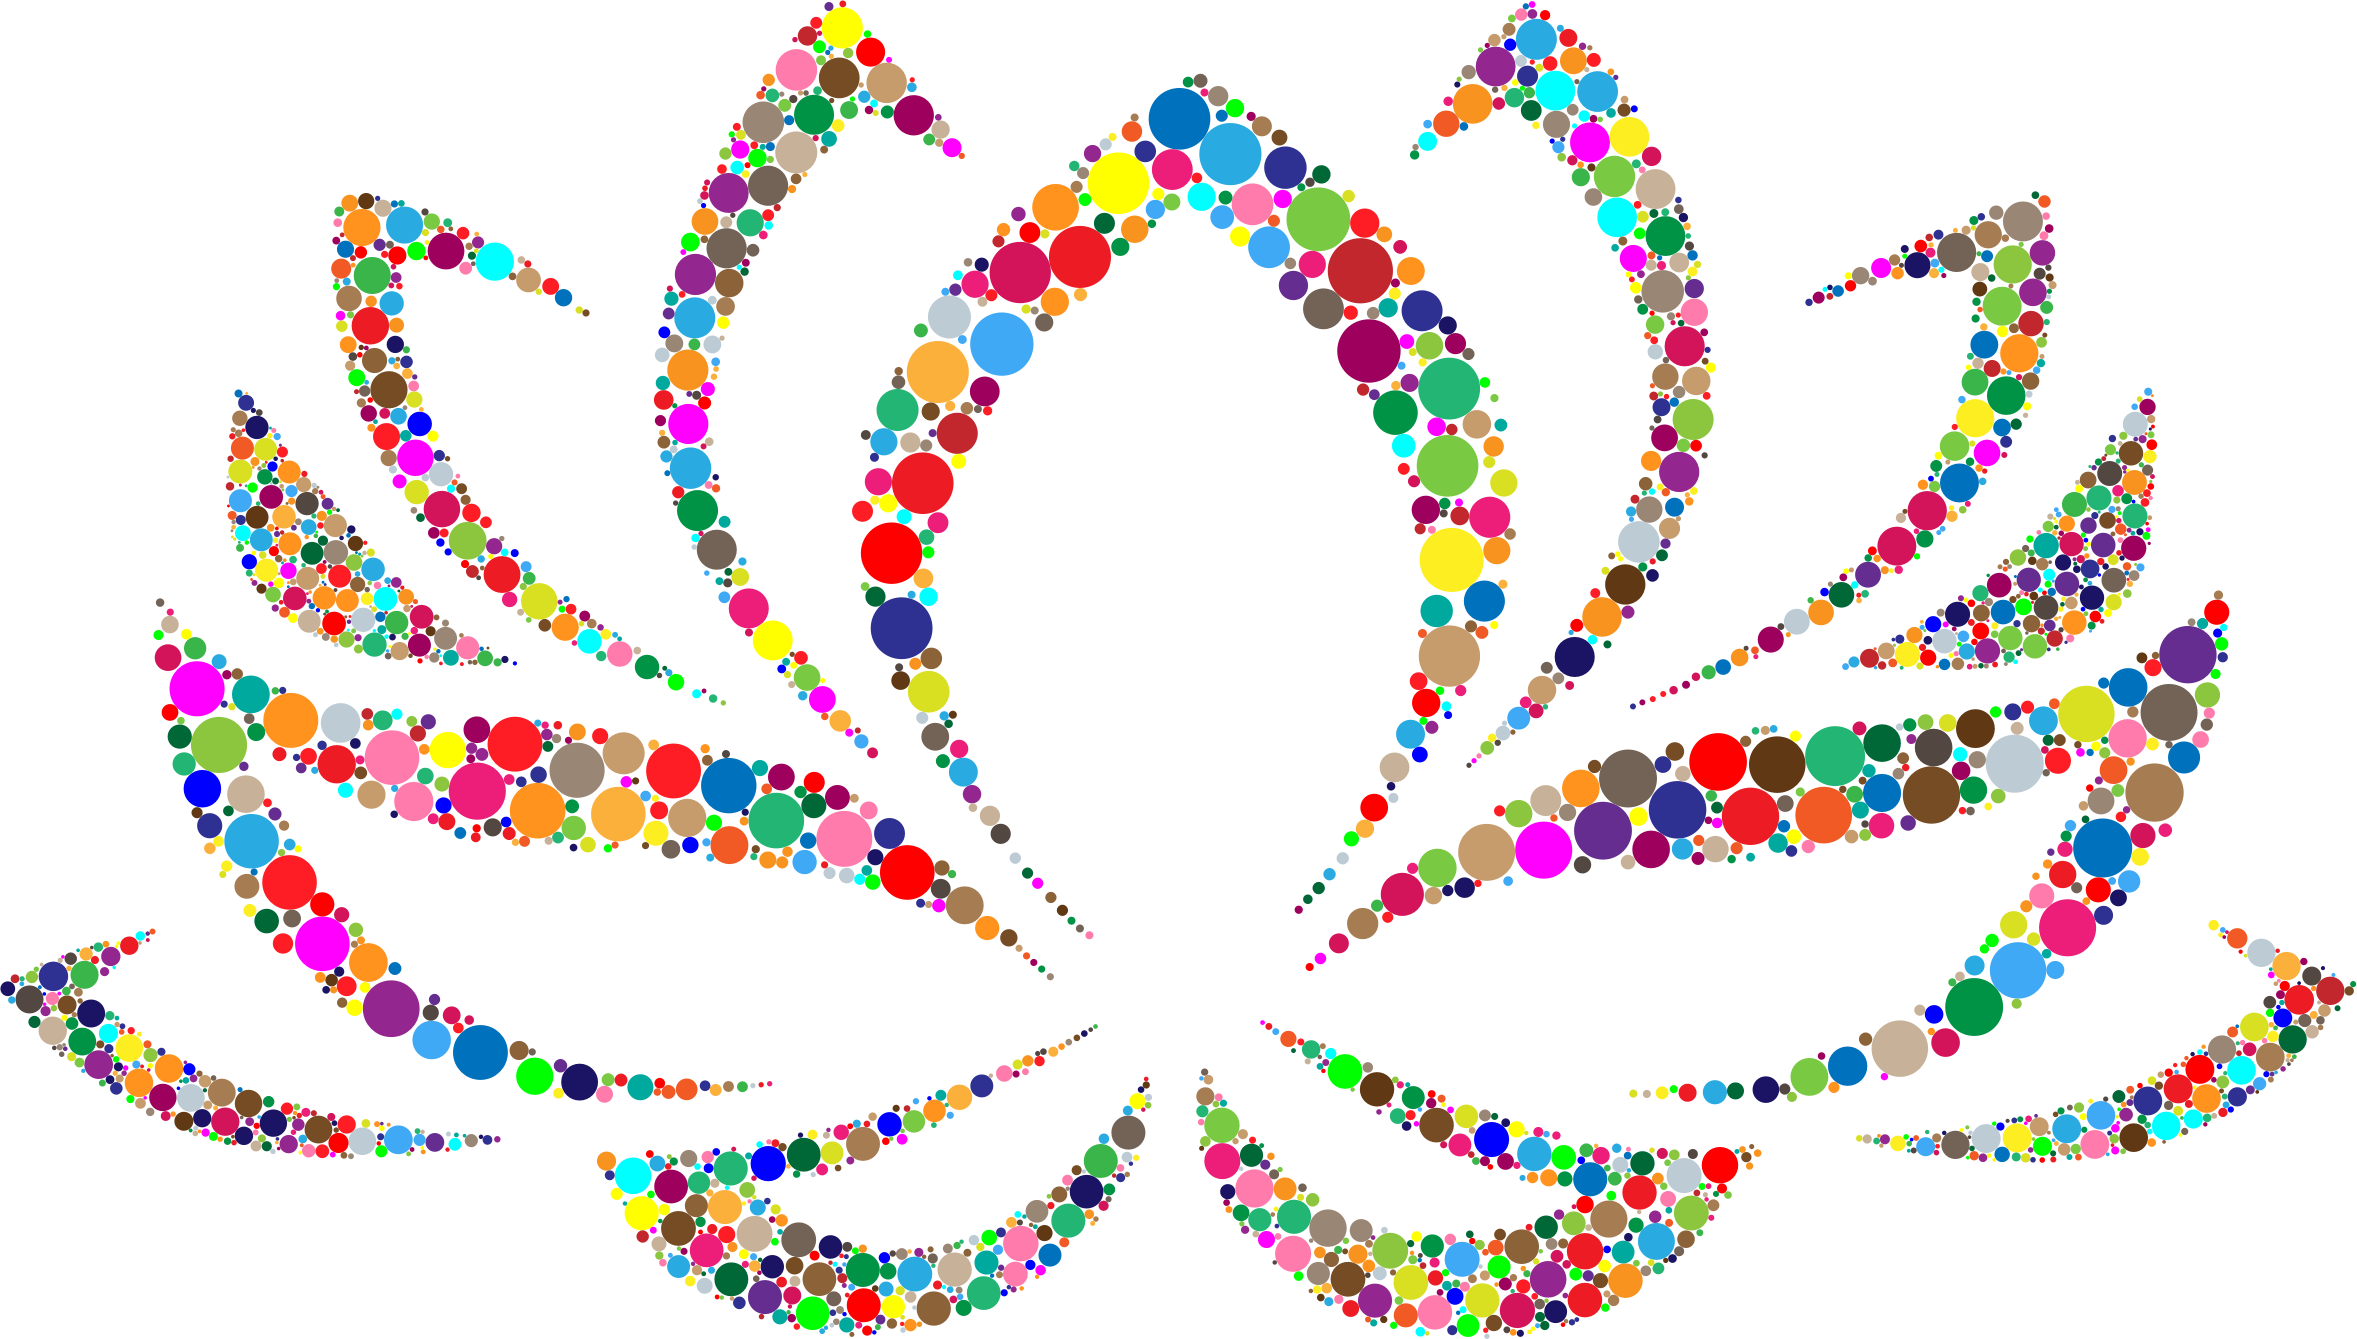 Clipart colorful lotus flower circles big image png mightylinksfo